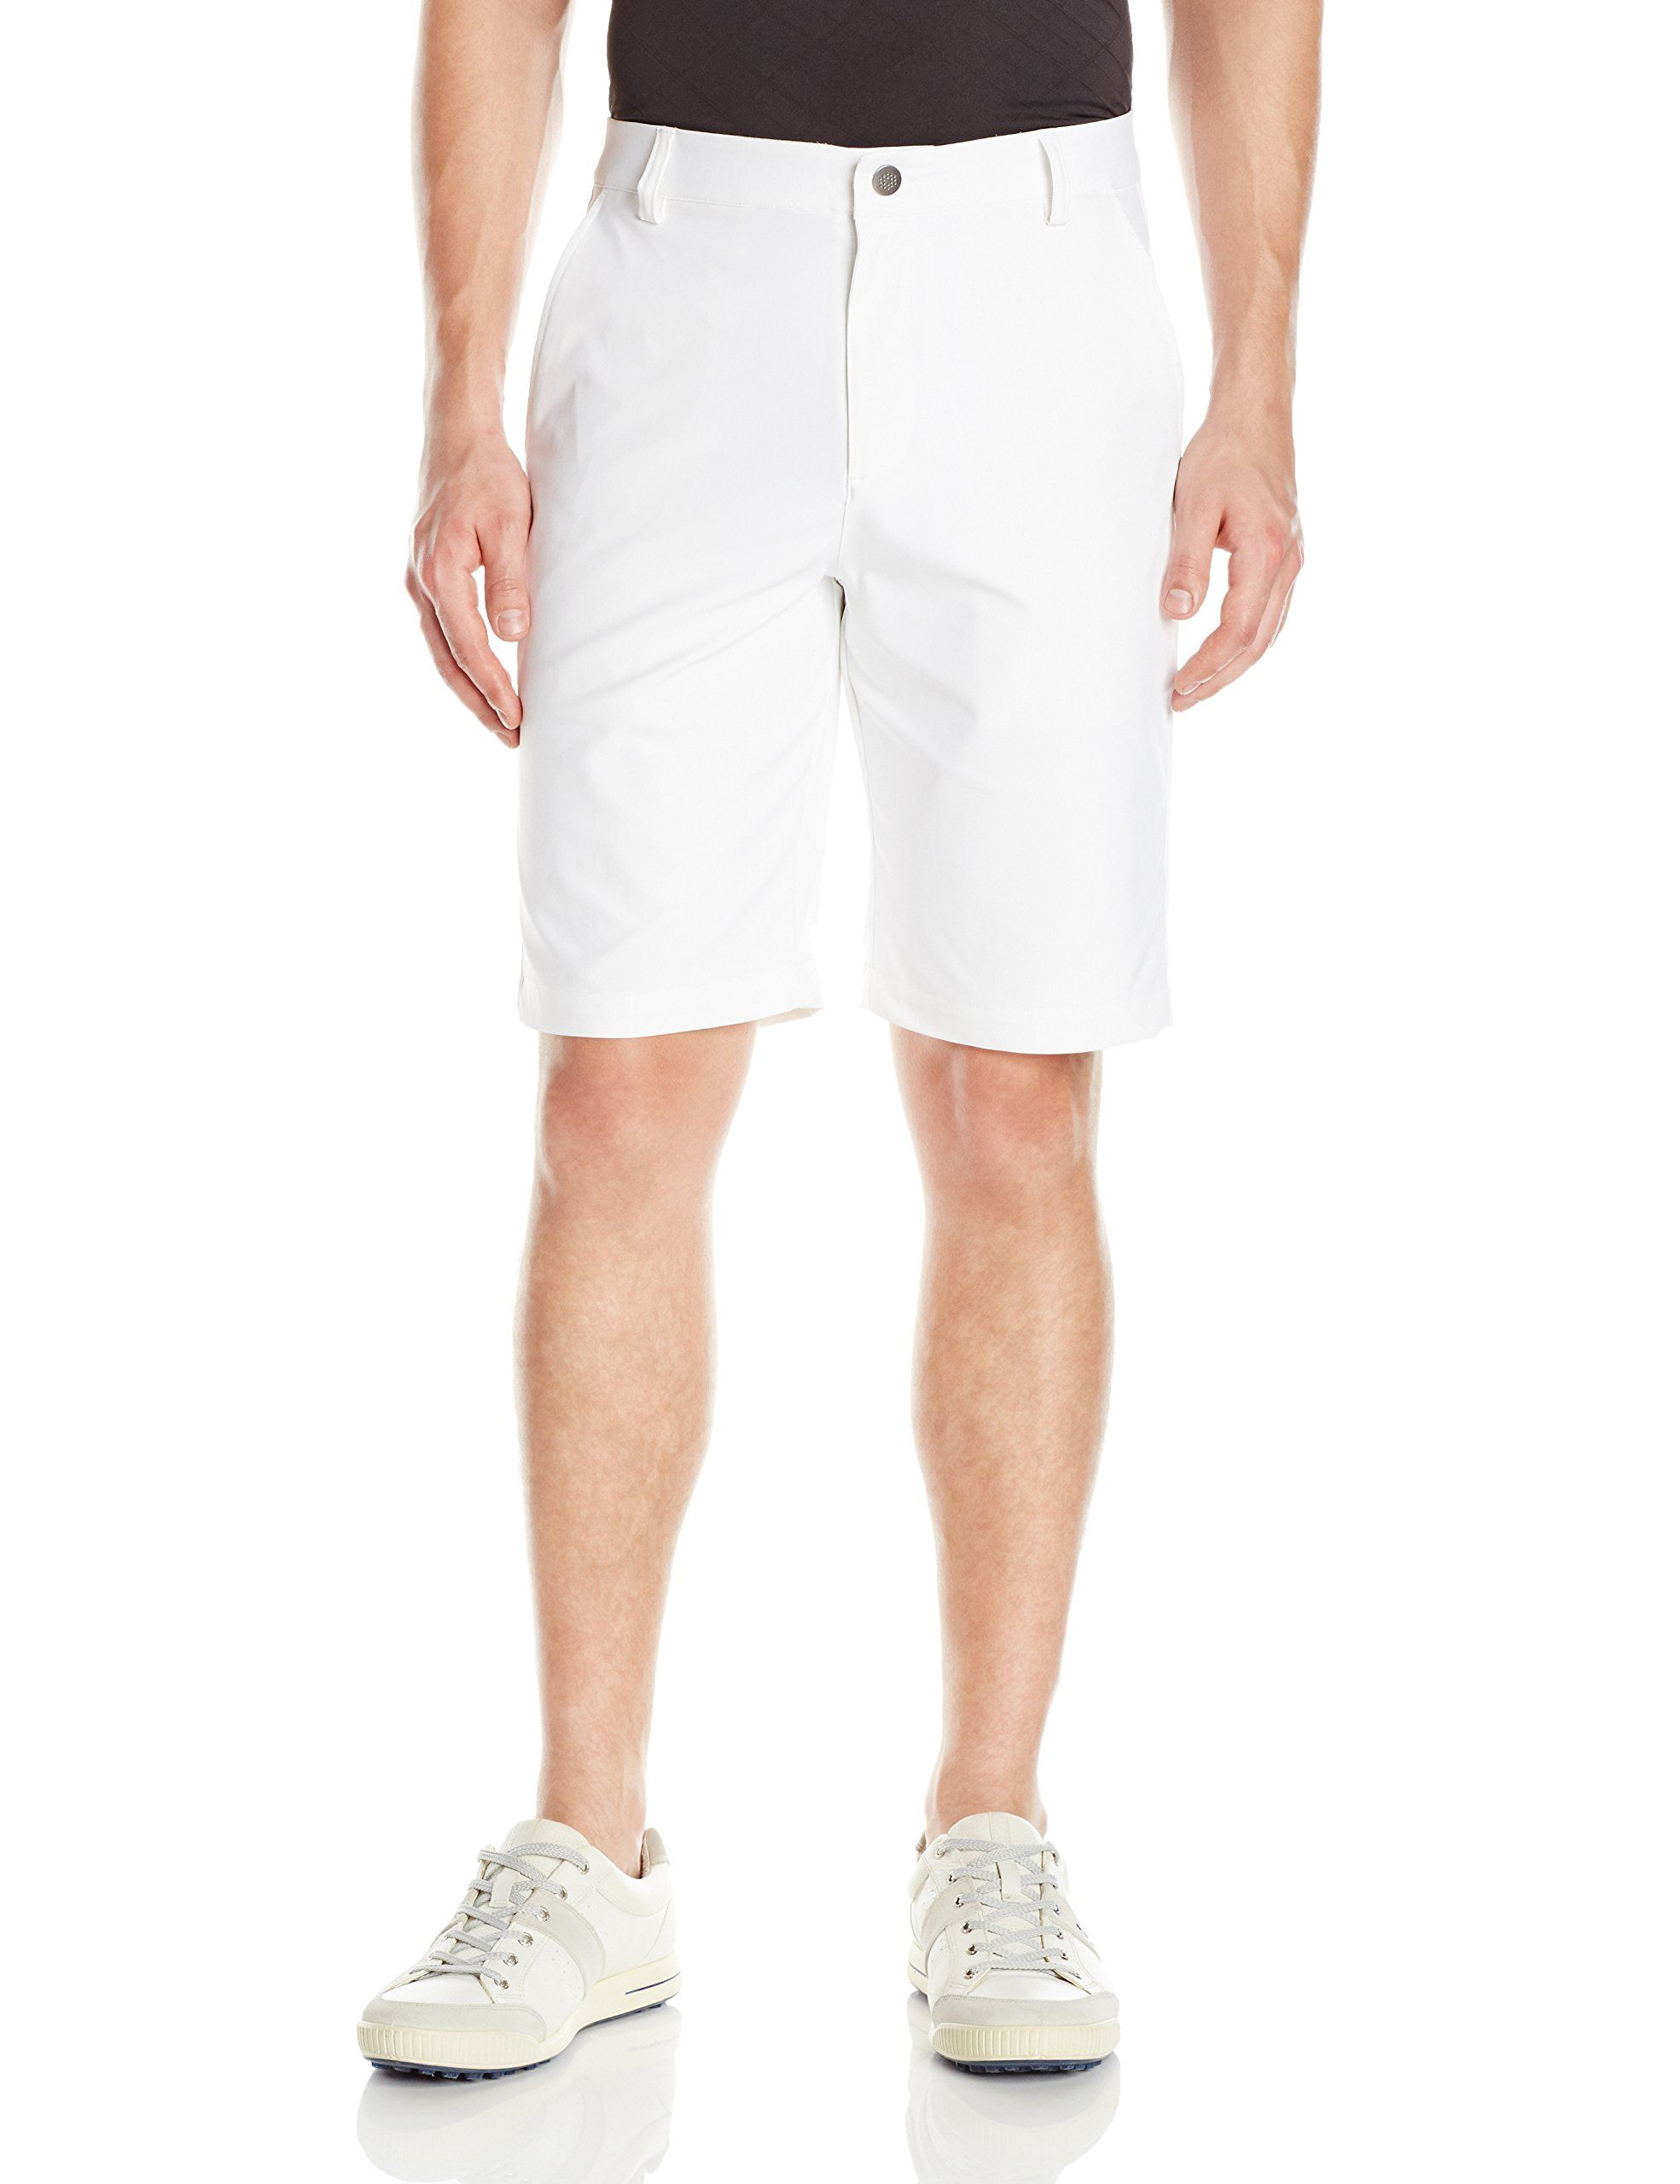 0c179c2fea5d Men Golf Clothing     PUMA Golf Mens Essential Pounce Shorts Bright White  Size 32     Click on the image for added information. (This is an affiliate  link).